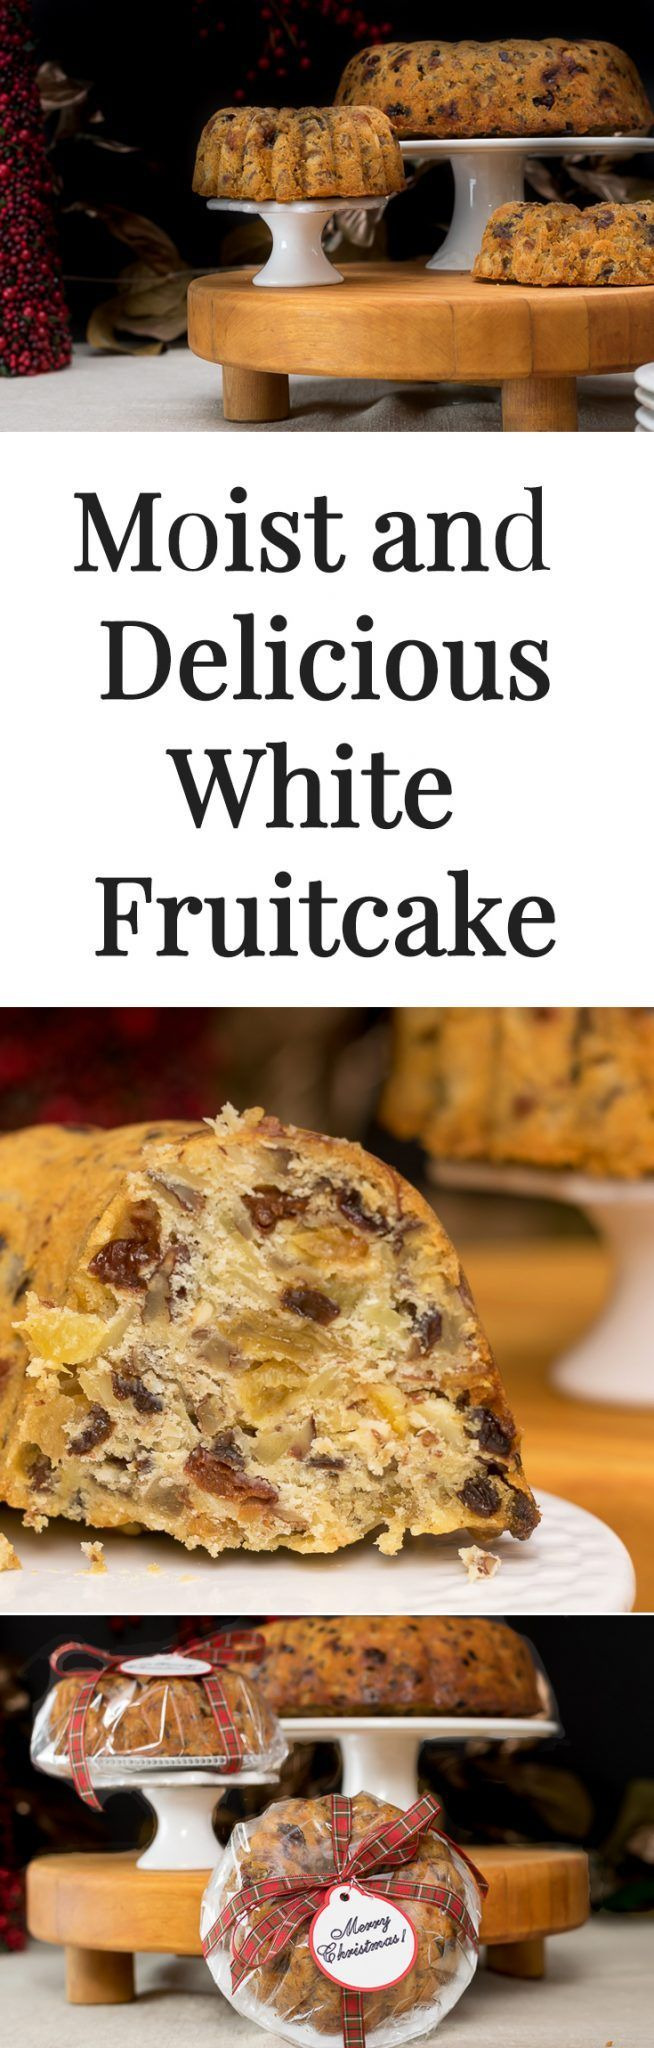 It's time to bring Fruitcake back! This moist and delicious (and boozy) White Fruitcake uses natural dried fruit and nuts for the tastiest holiday treat around. Mini bundt pans make them the perfect gifting size!